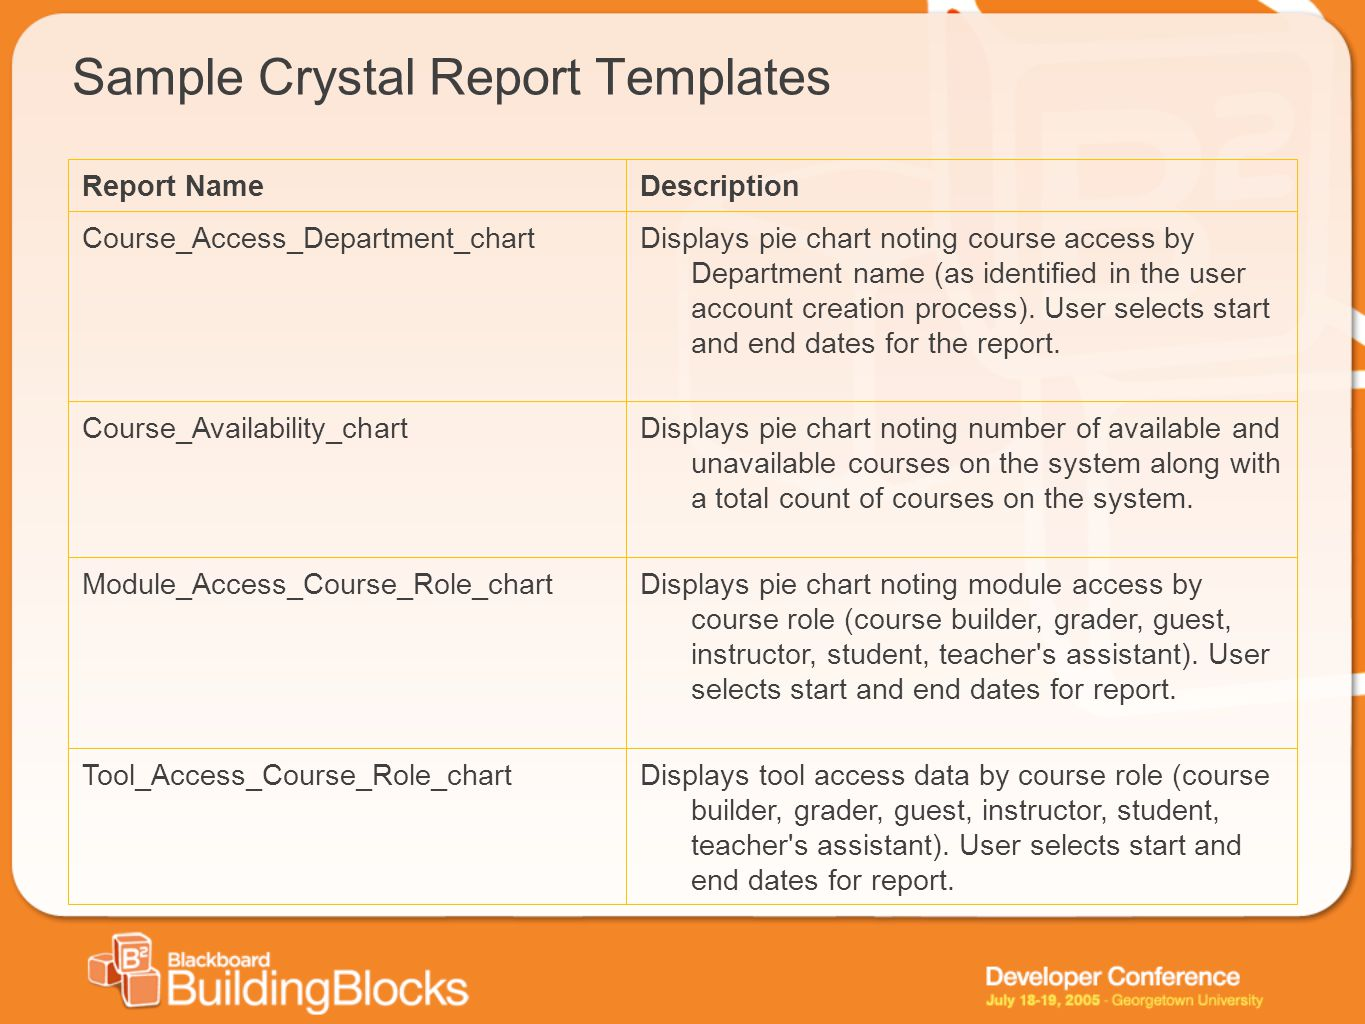 Sample Crystal Report Templates